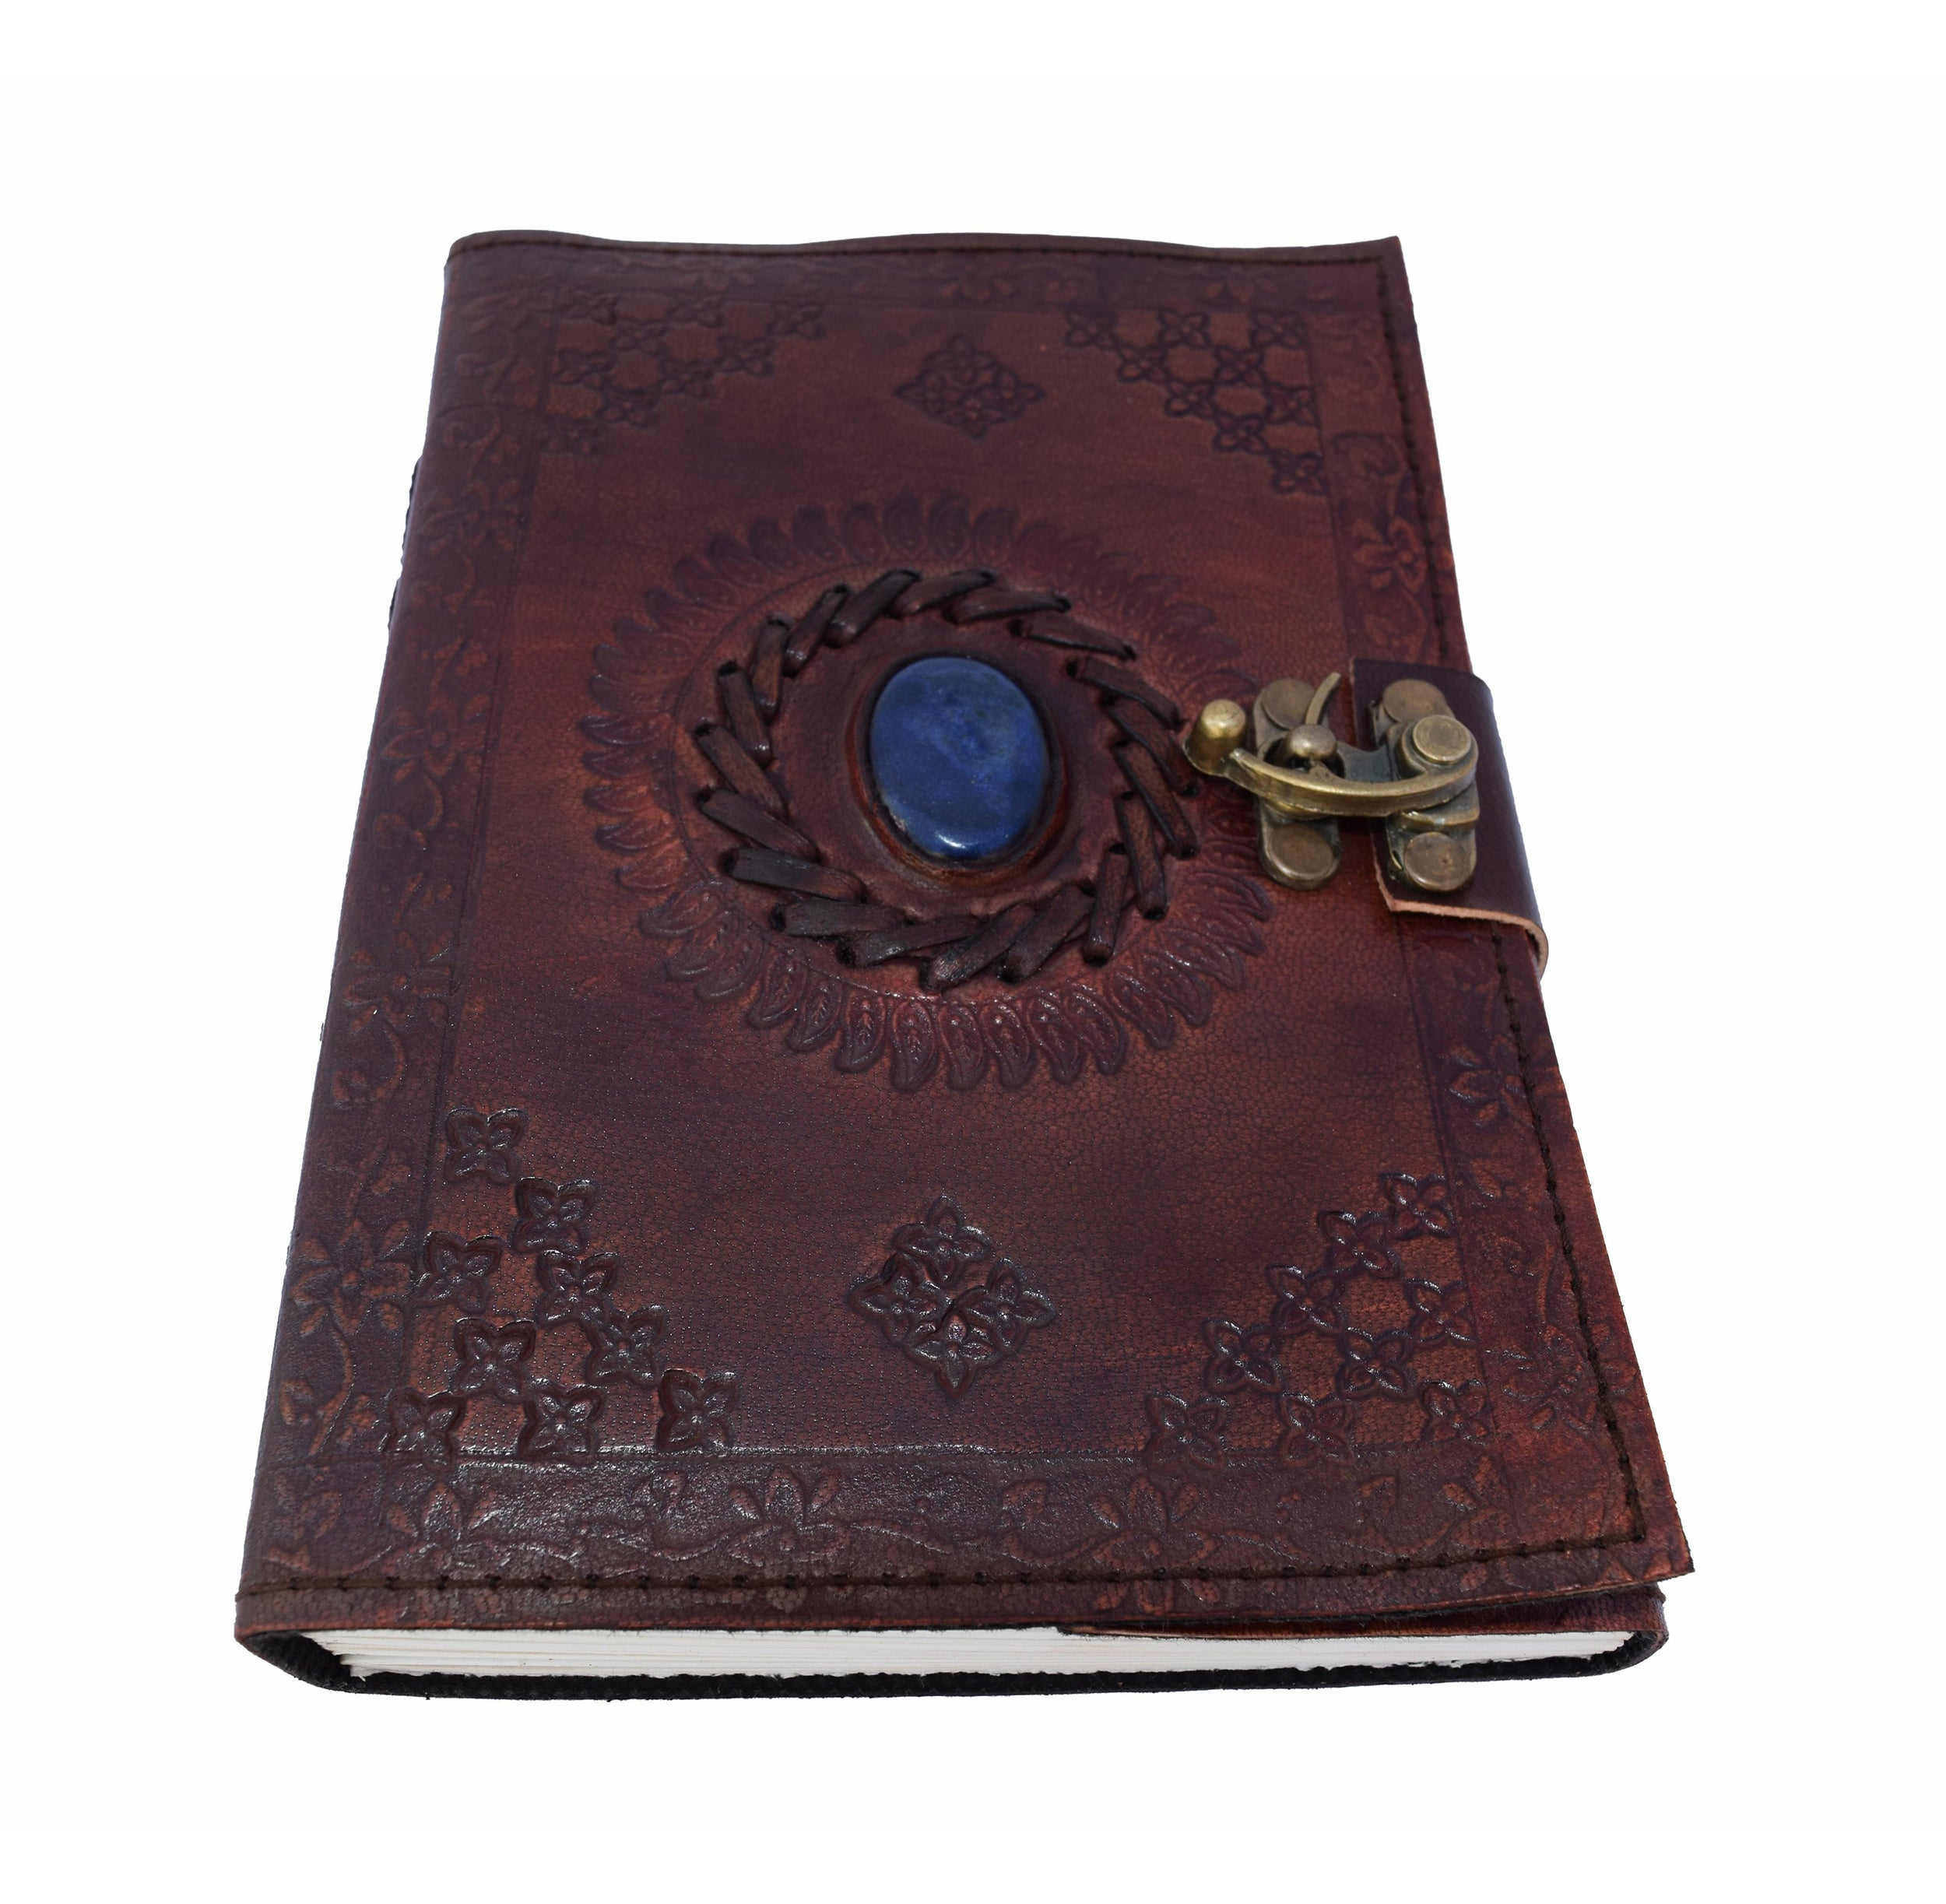 Handmade Refillable Leather Journal with Vintage Stone [PACK OF 2] - thar-artefacts